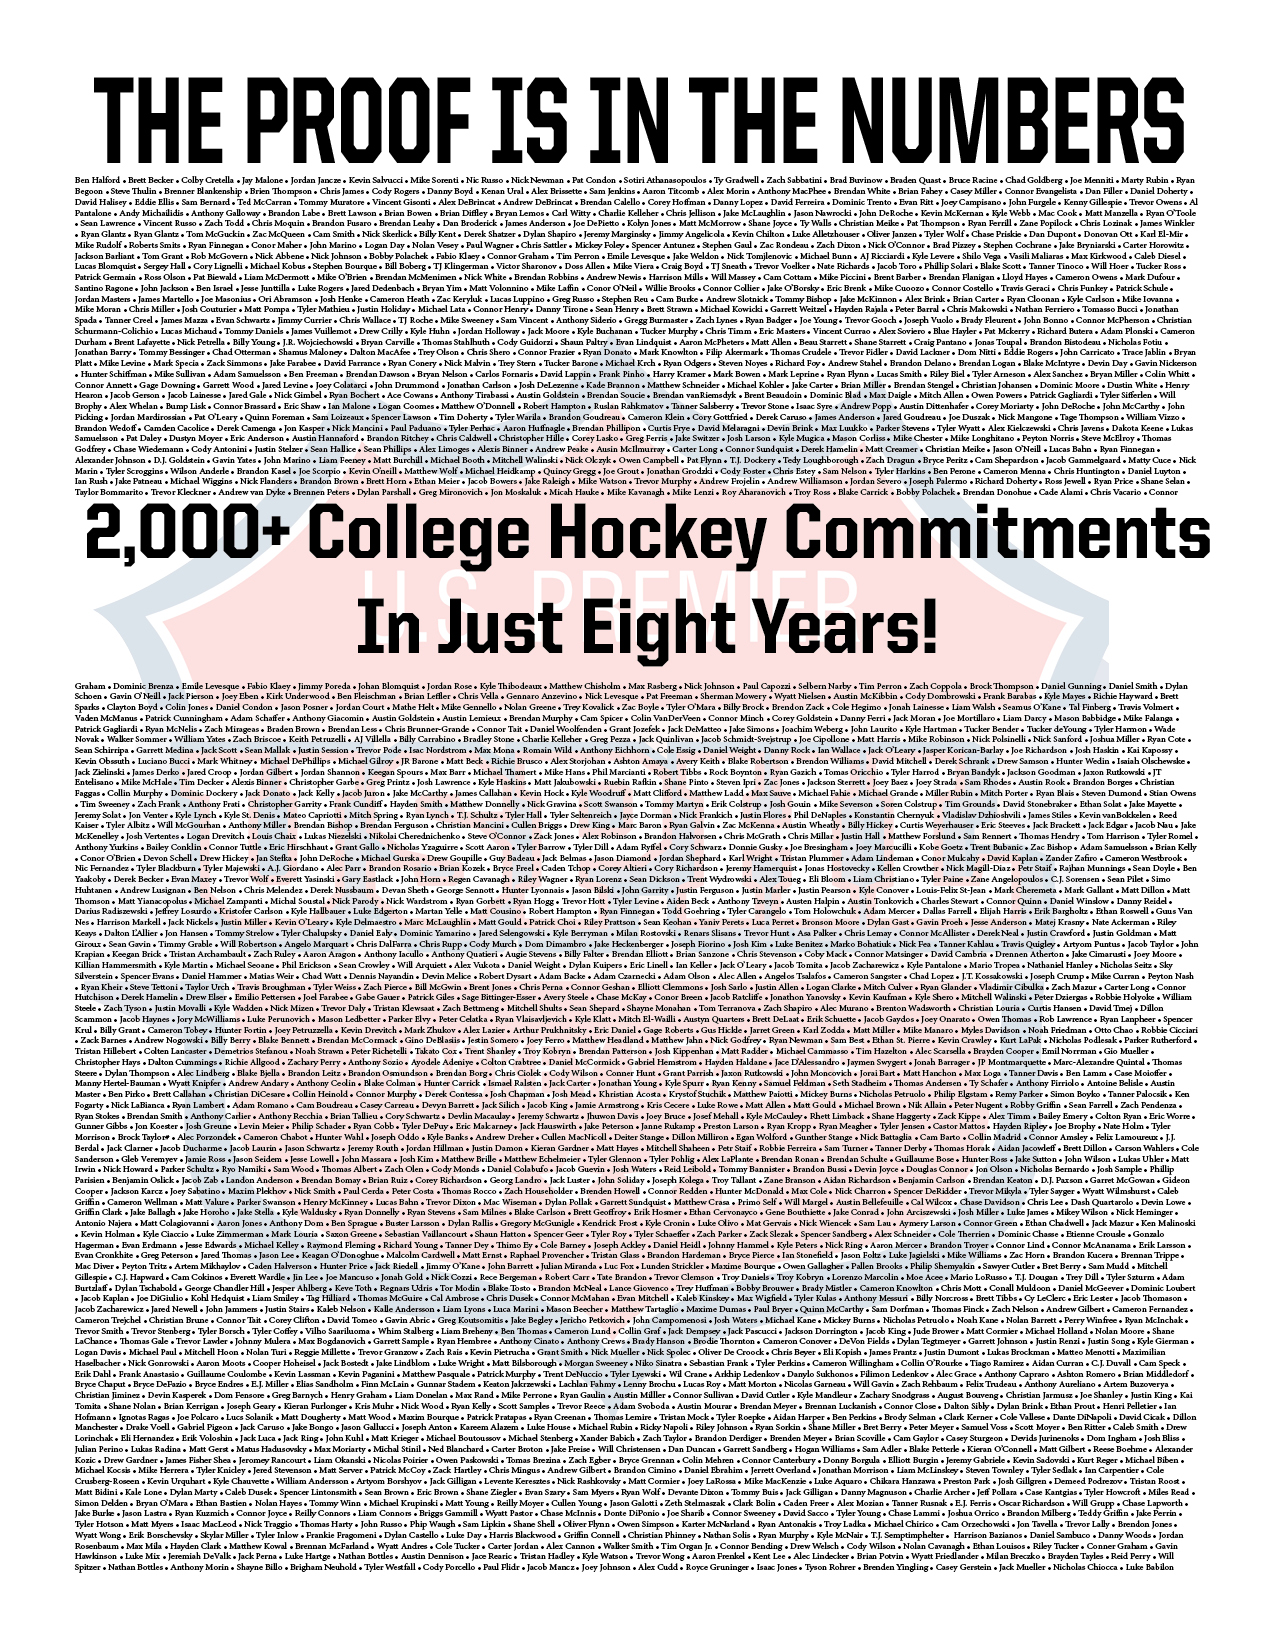 300+ NCAA Commitments In 2019-20